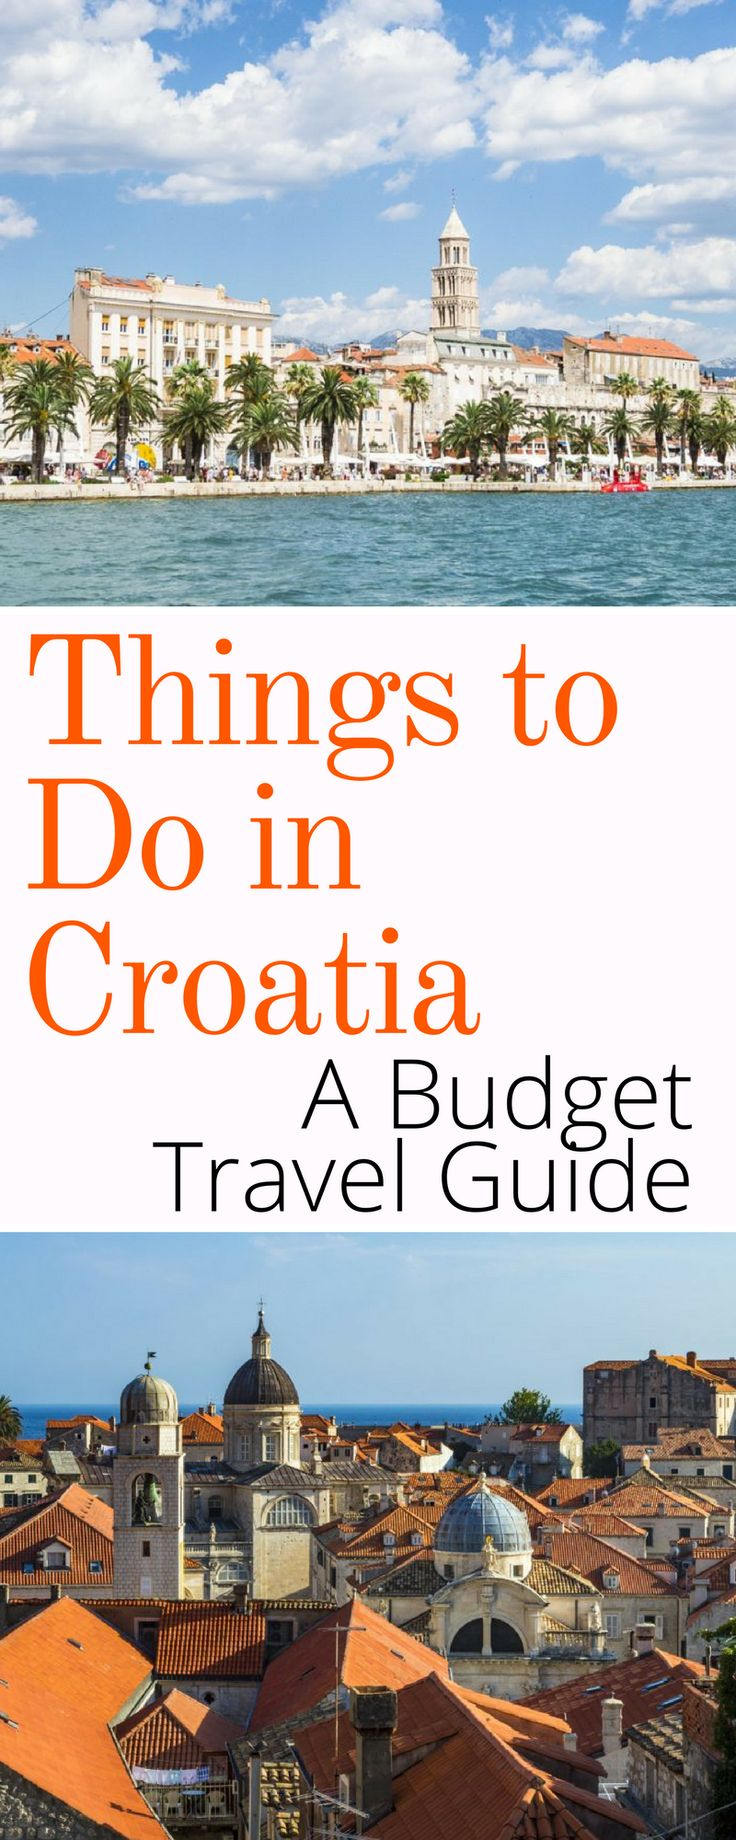 Croatia Budget Travel Guide: The top things to do and places to see in Croatia on a budget. Zagreb, Split, Dubrovnik, and much more! Click here to see how to plan a budget vacation in Croatia.